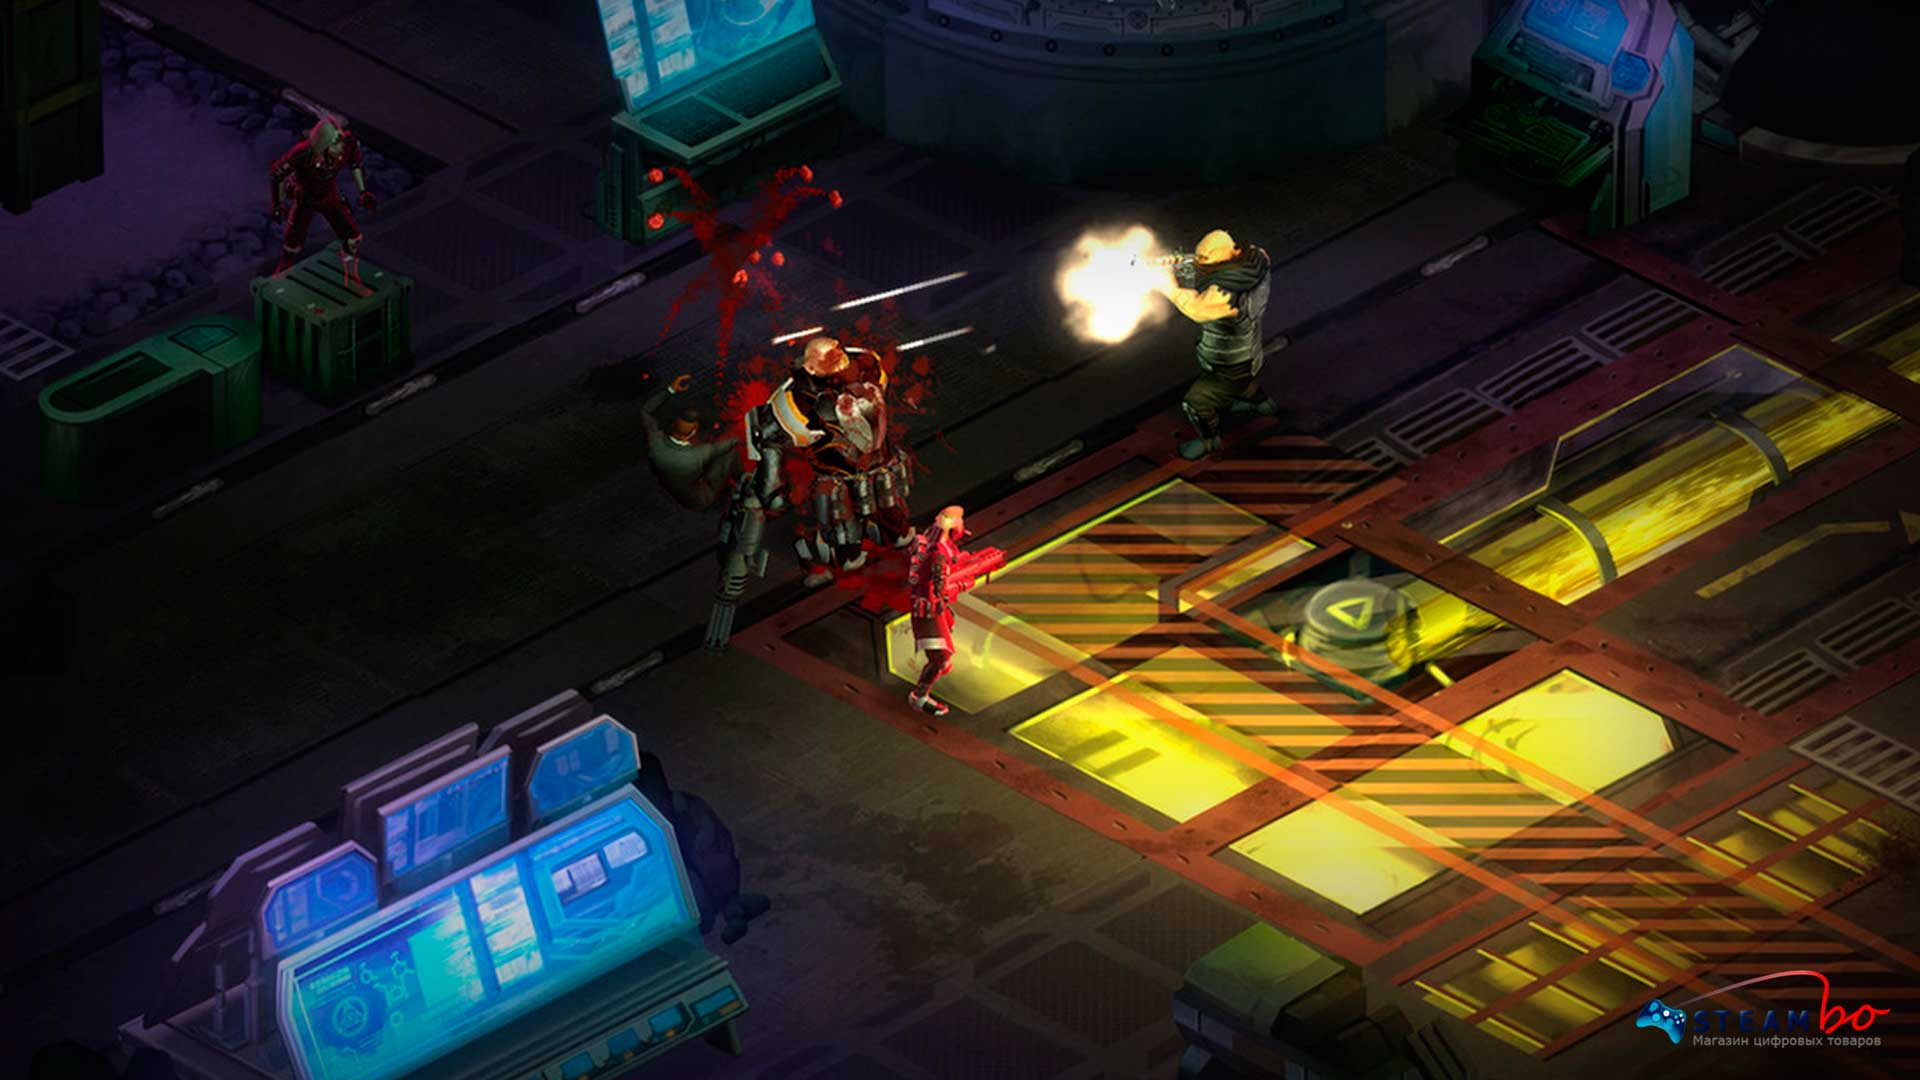 Shadowrun: Dragonfall DC Region Free (Steam Gift/Key)